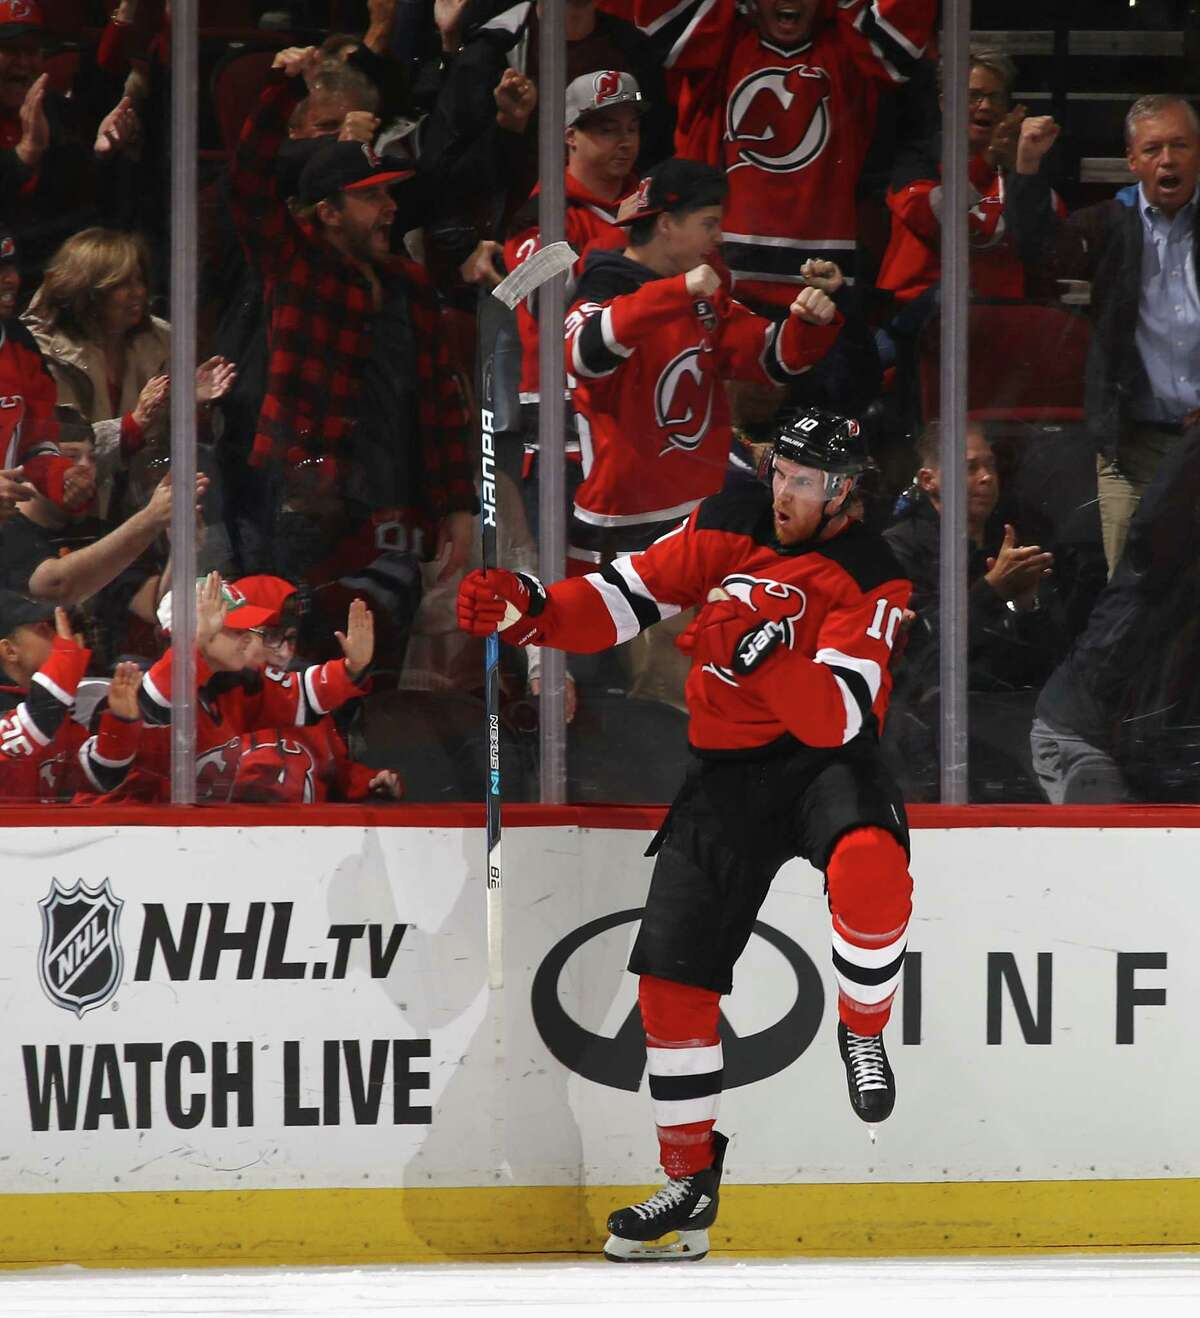 NEWARK, NJ - OCTOBER 27: Jimmy Hayes #10 of the New Jersey Devils celebrates his first period goal against the Ottawa Senators at the Prudential Center on October 27, 2017 in Newark, New Jersey. (Photo by Bruce Bennett/Getty Images) ORG XMIT: 775040705